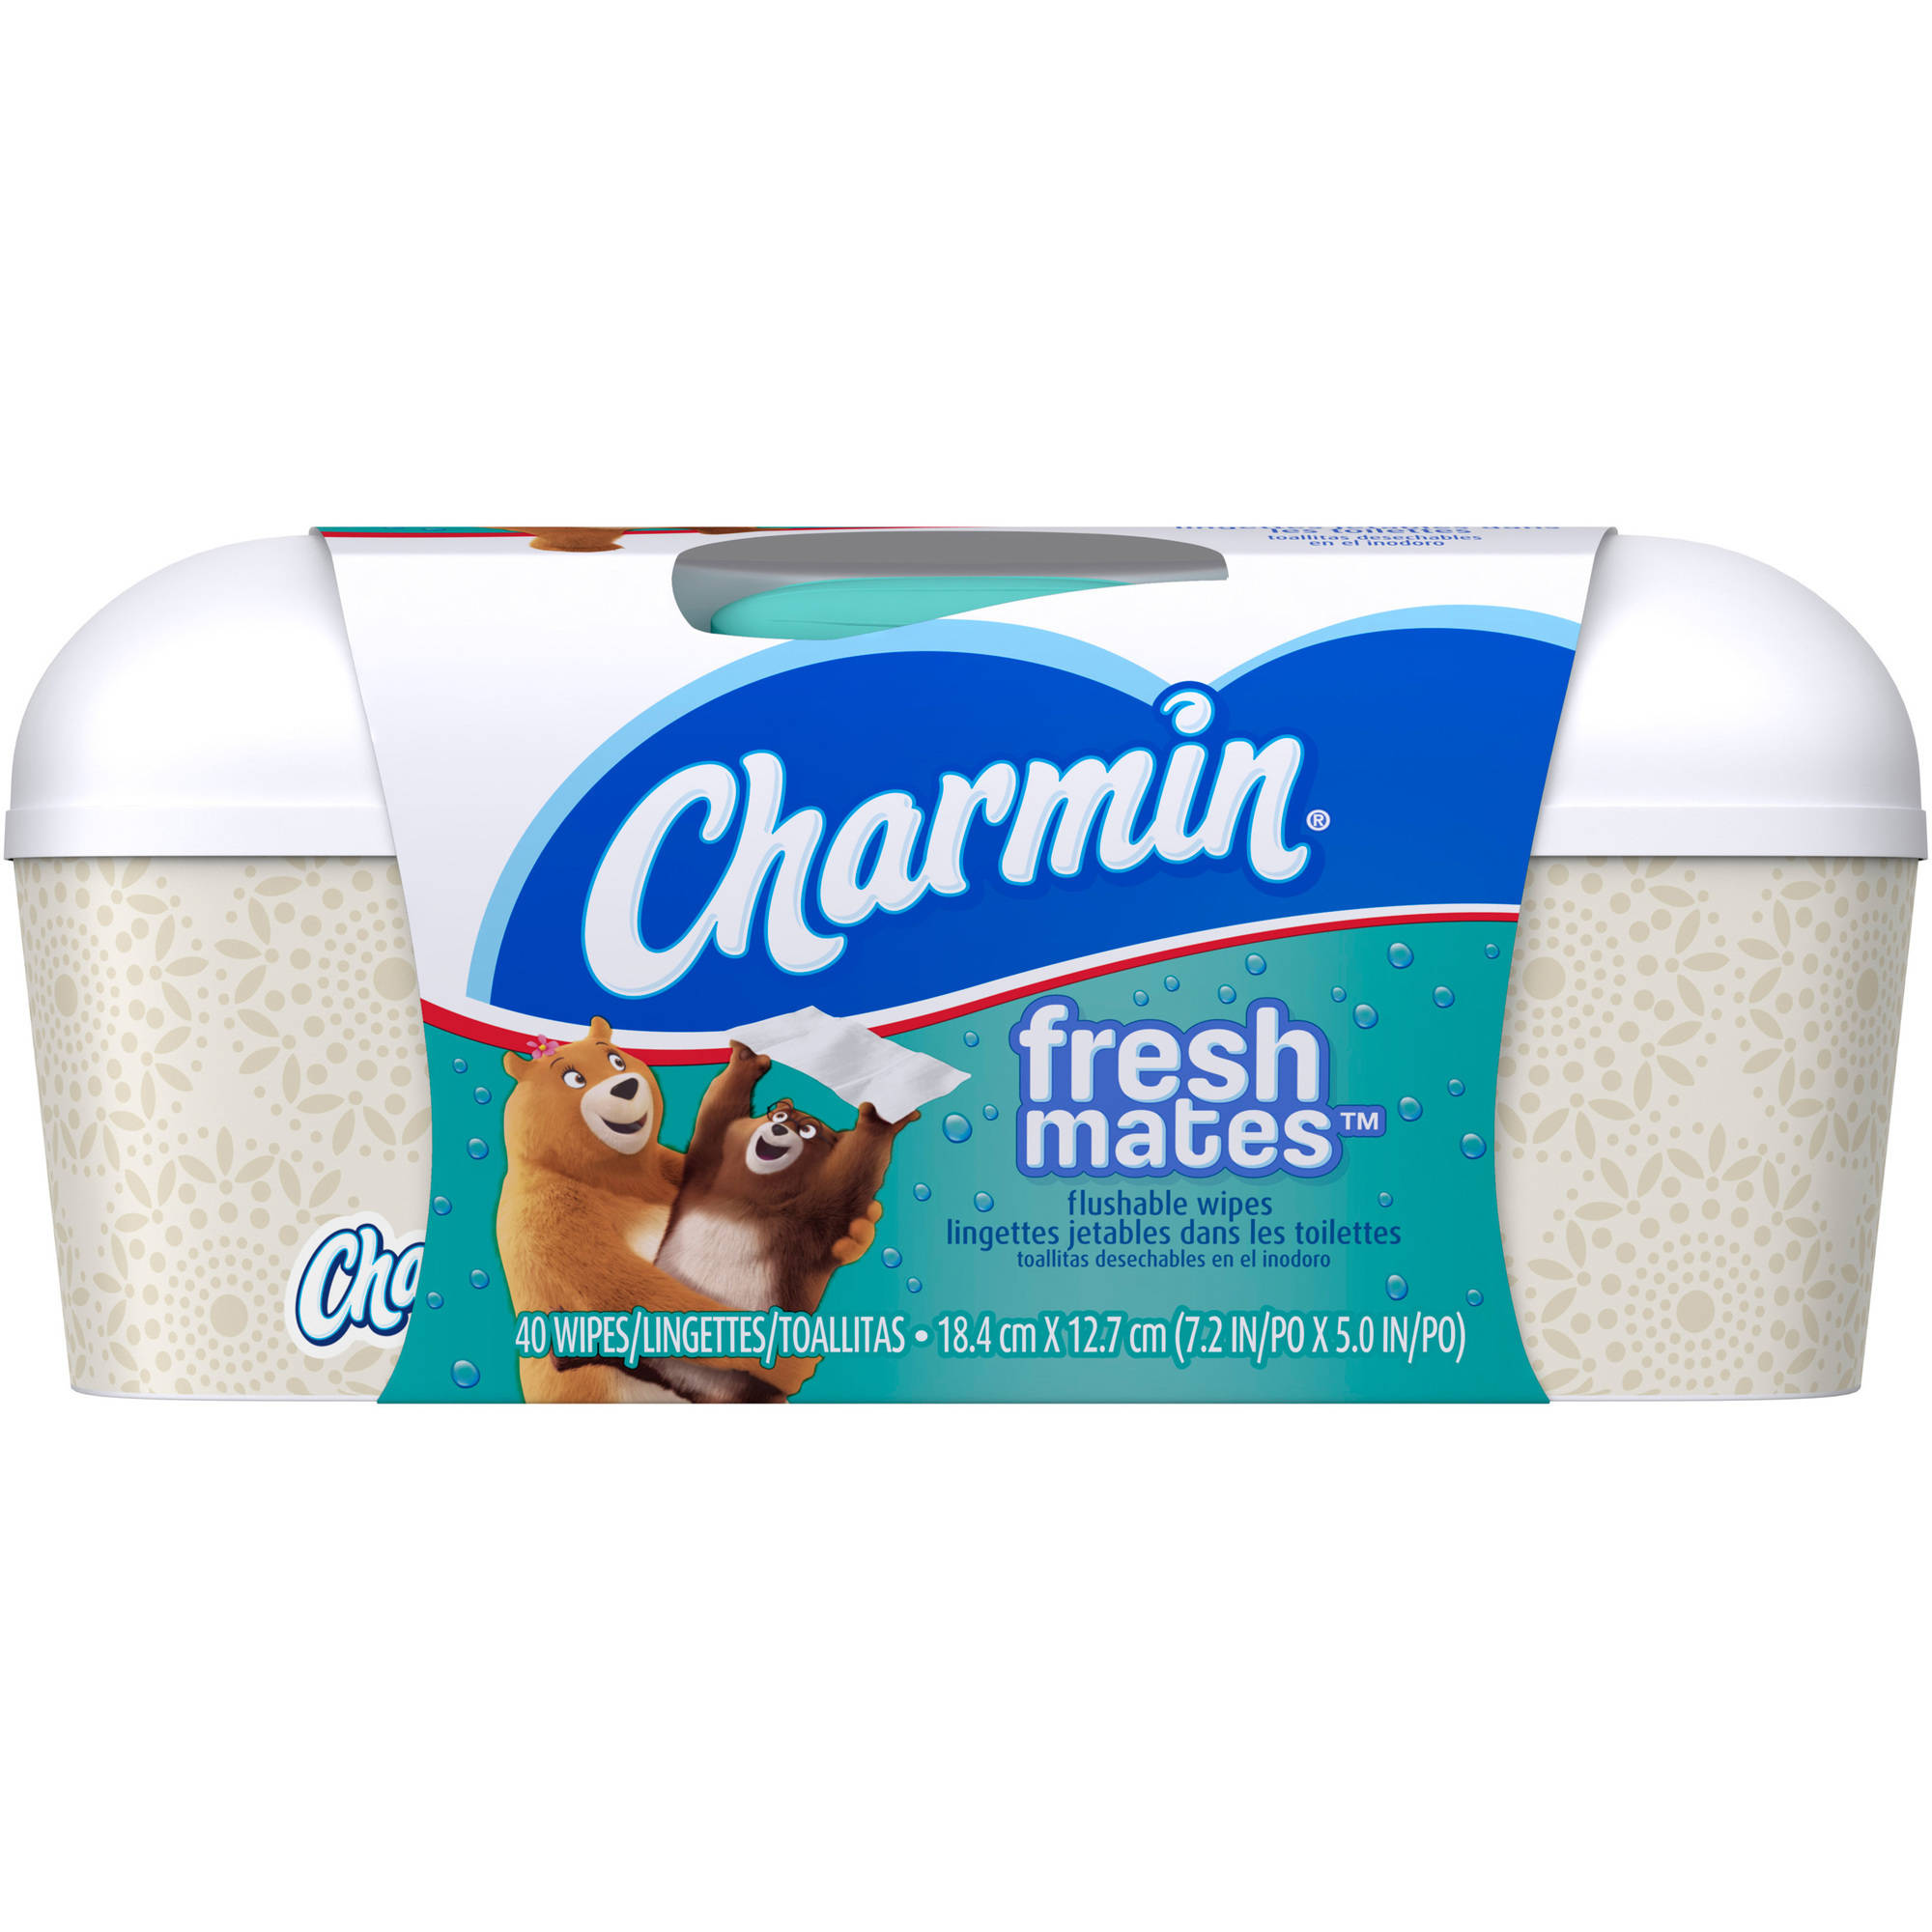 Charmin Freshmates Flushable Wipes, 40 sheets